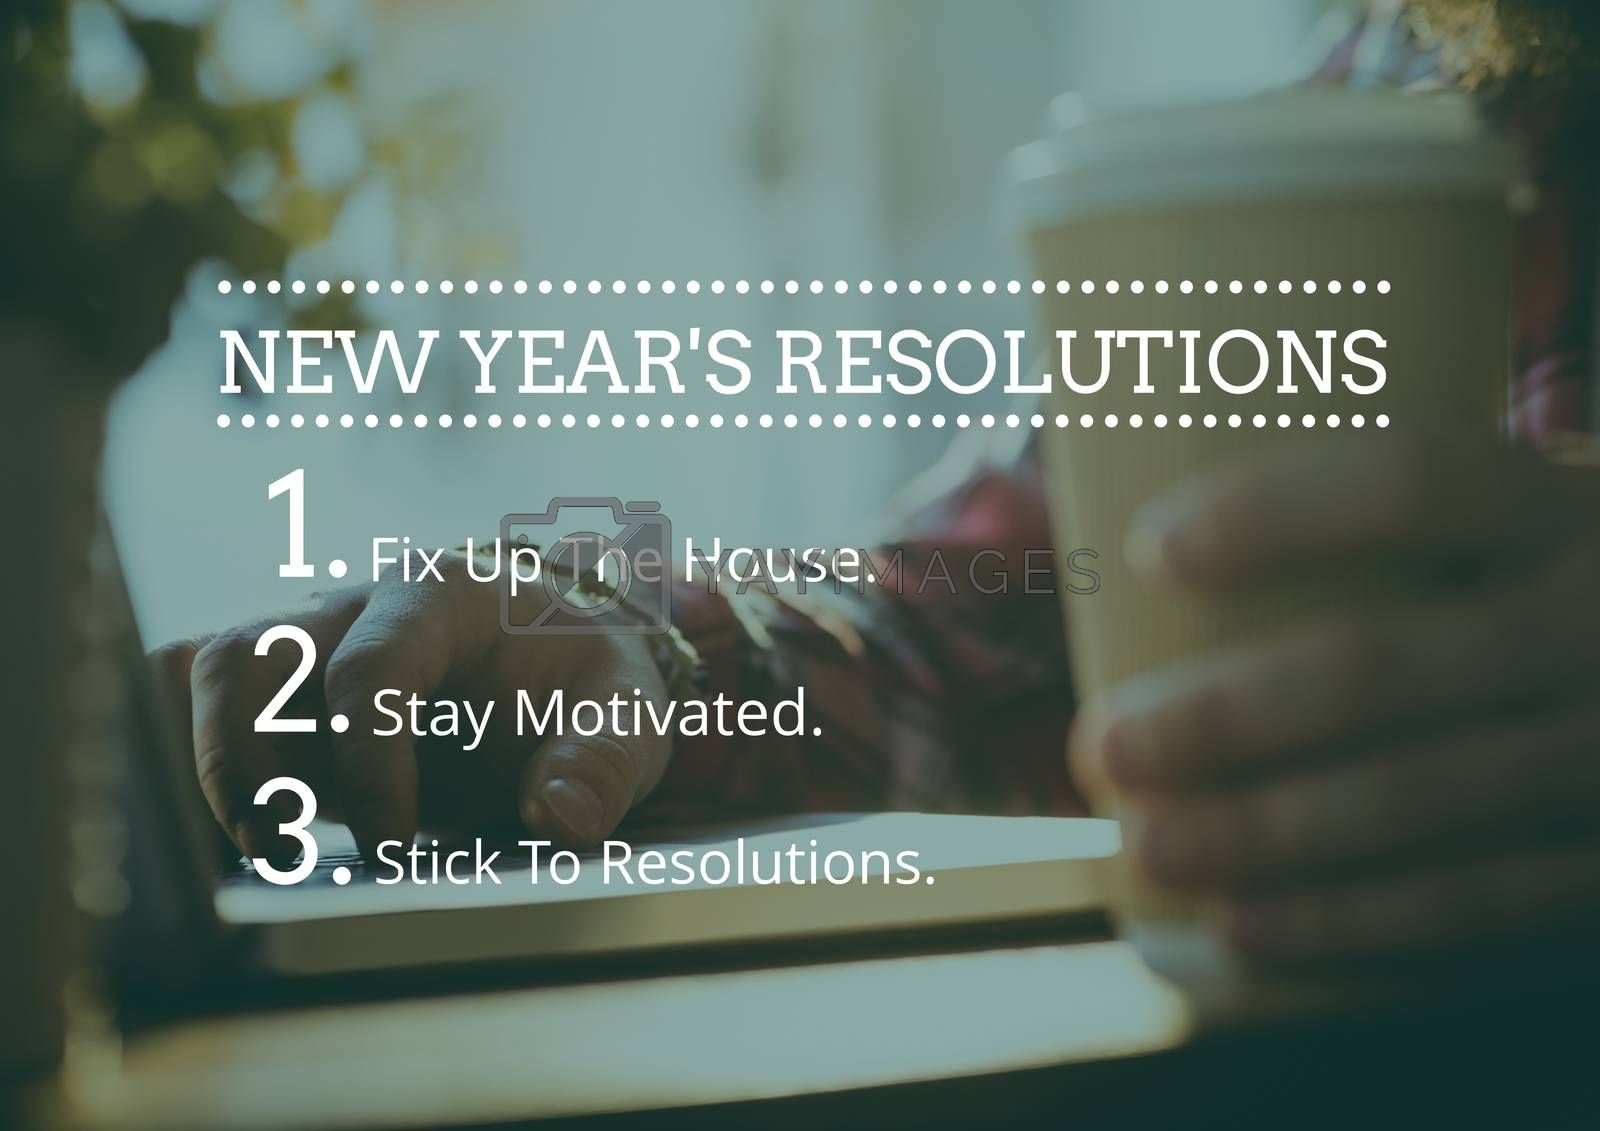 New year resolution goals against hand holding coffee cup in background